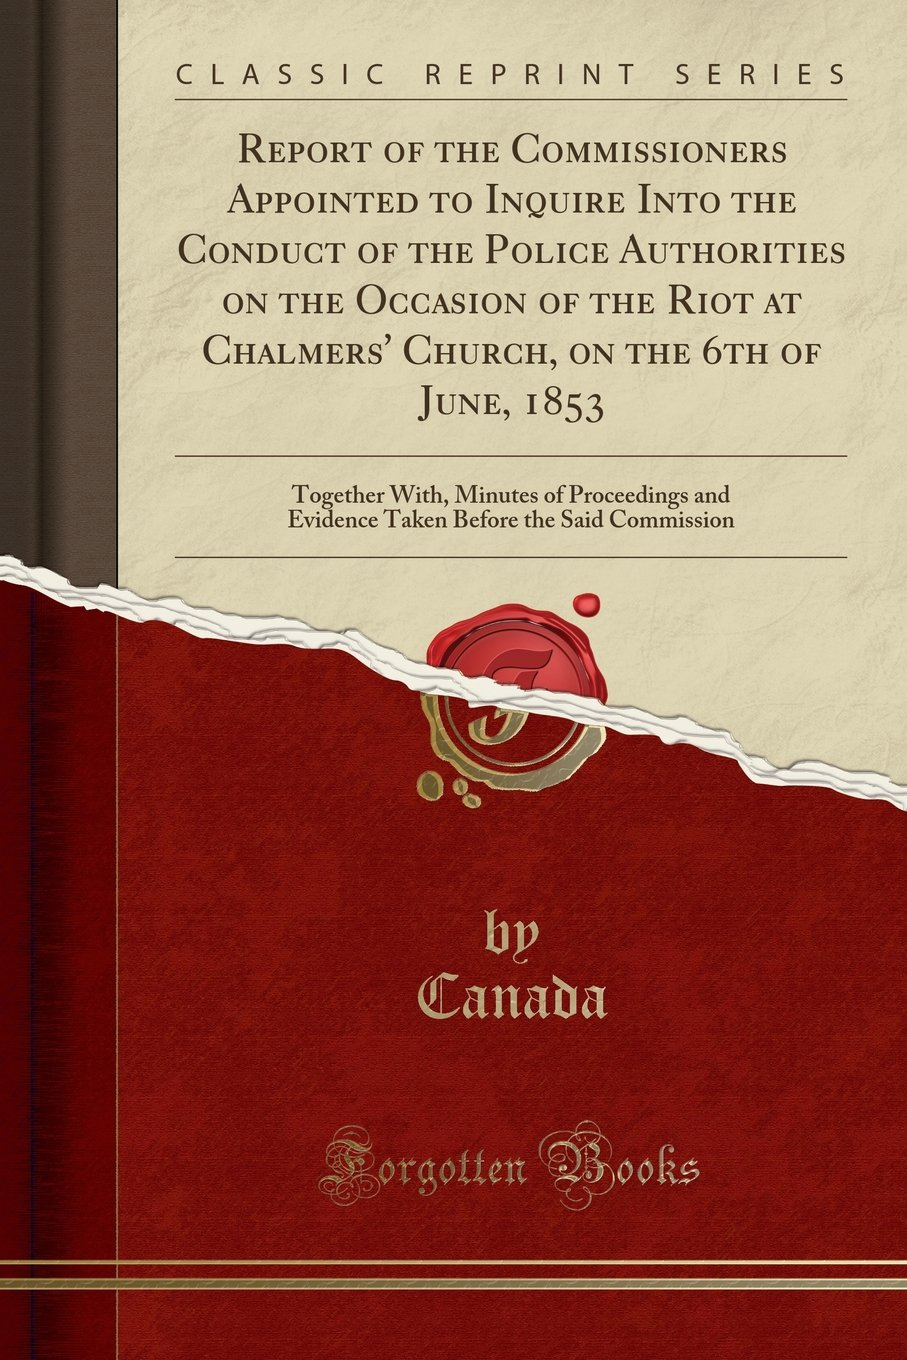 Report of the Commissioners Appointed to Inquire Into the Conduct of the Police Authorities on the Occasion of the Riot at Chalmers' Church, on the ... and Evidence Taken Before the Said Commission pdf